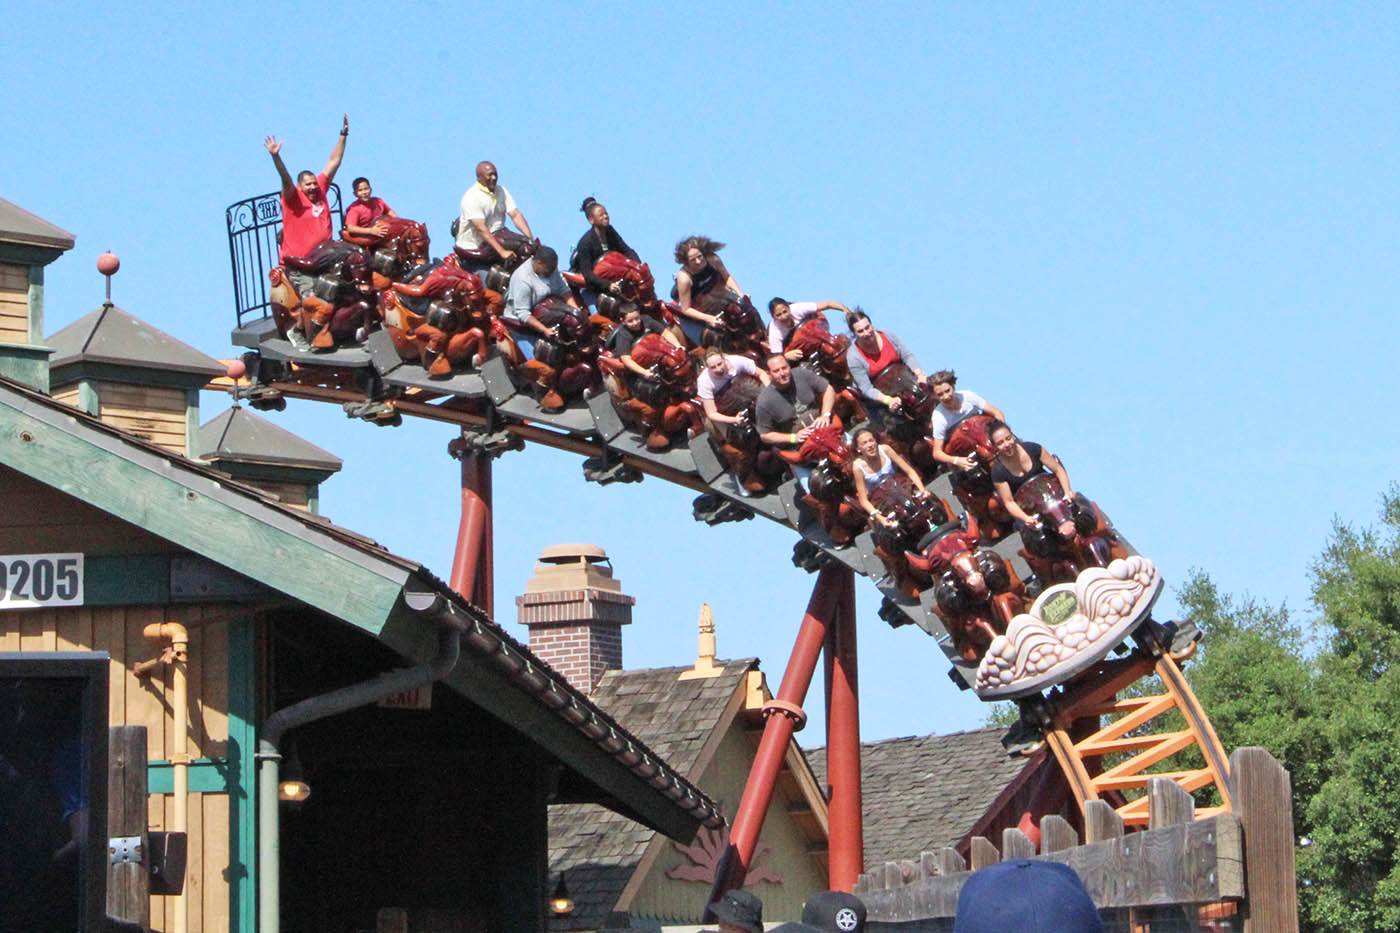 Knott's Berry Farm New Coaster Features Steepest Drop in ... |Knotts Berry Farm Coasters